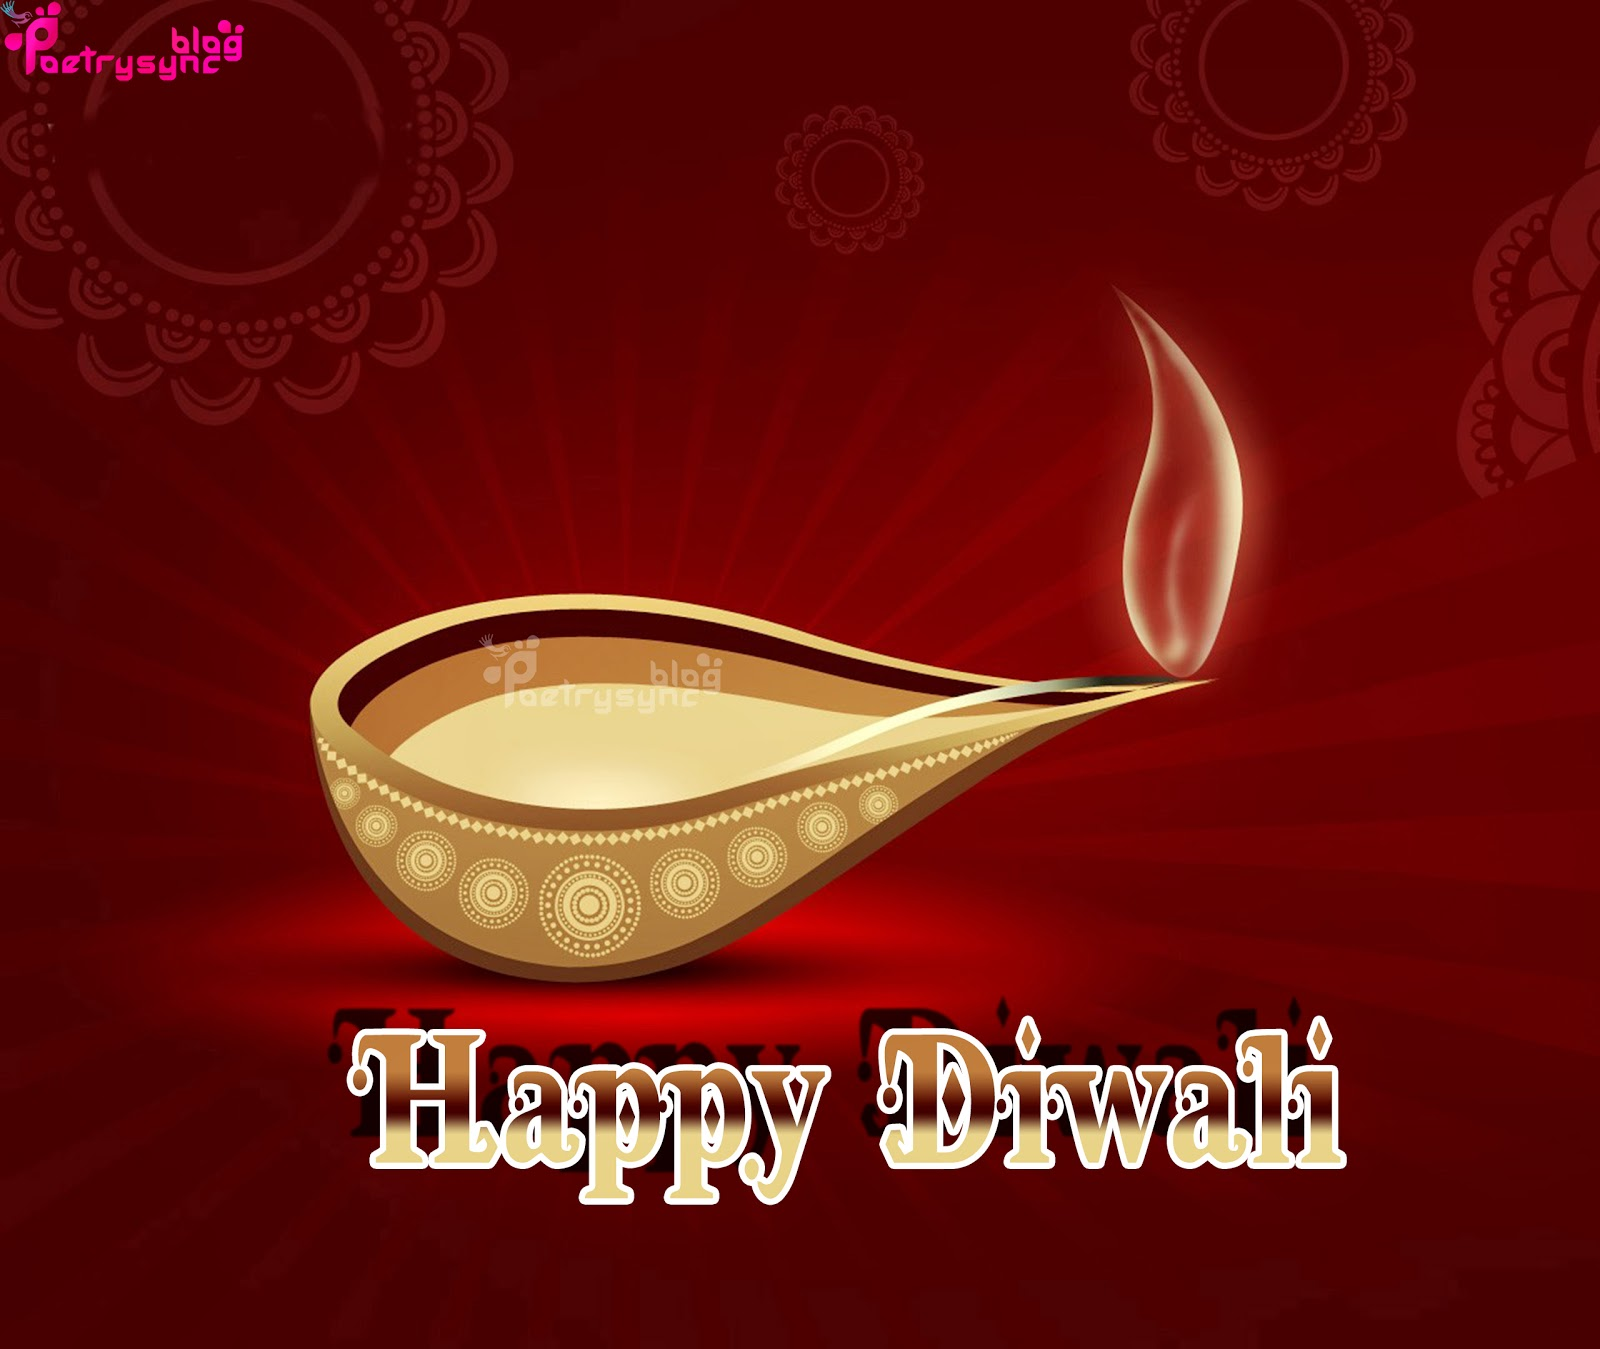 Happy Diwali Wishes Wallpapers With Diwali Messages And Information